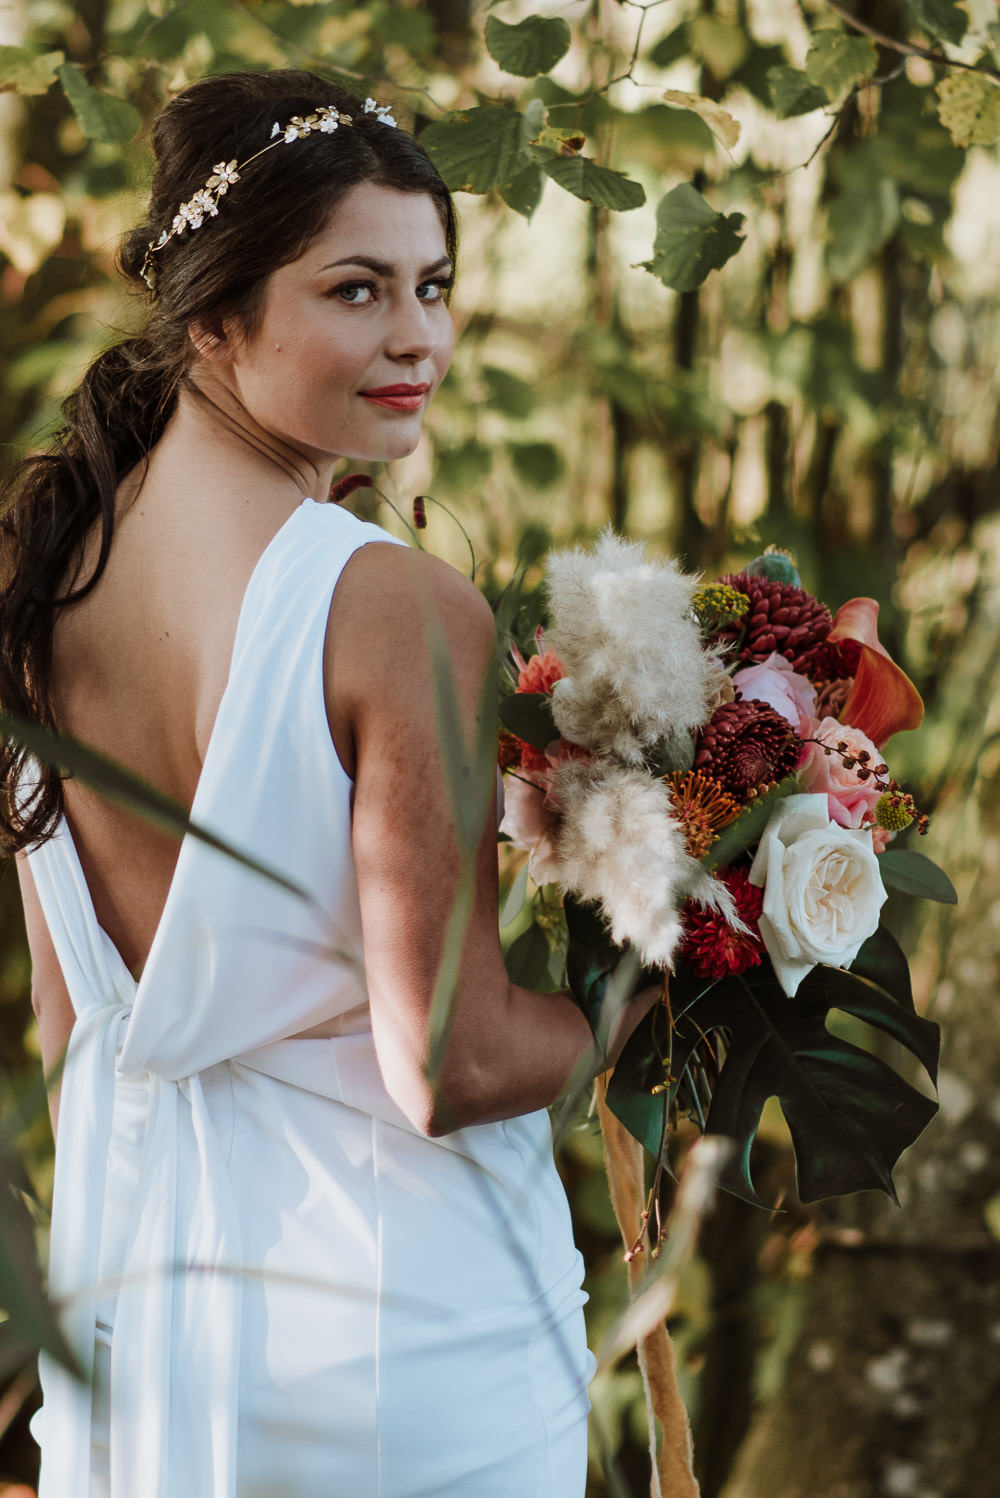 Dress Gown Bride Bridal Low Back Knot 1970 Retro Mid Century Wedding Ideas Laura Martha Photography